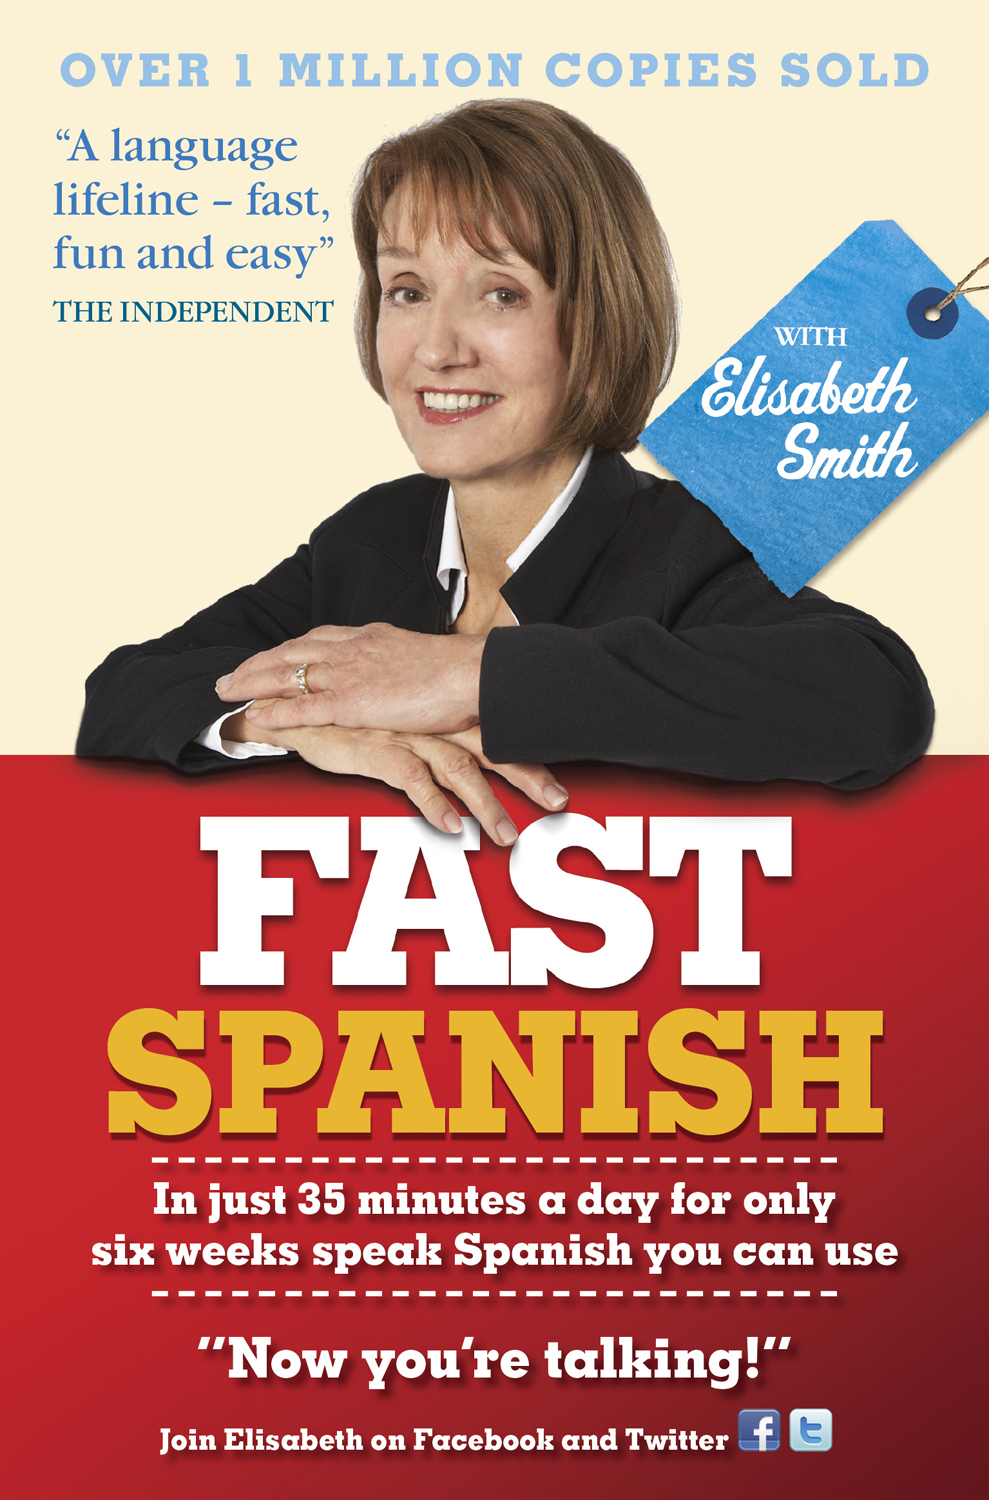 Fast Spanish with Elisabeth Smith Ebook